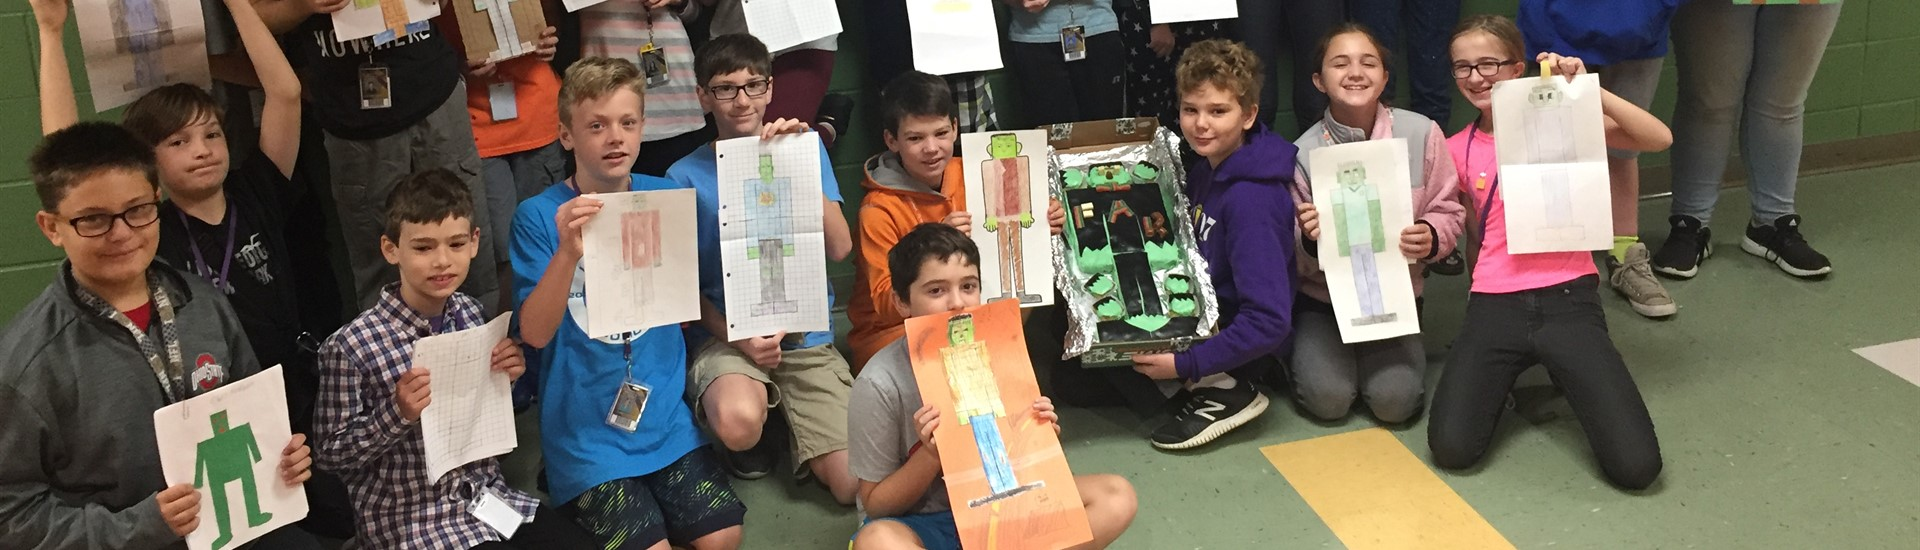 Mr. Kerney's math class displays their Frankenstein creations